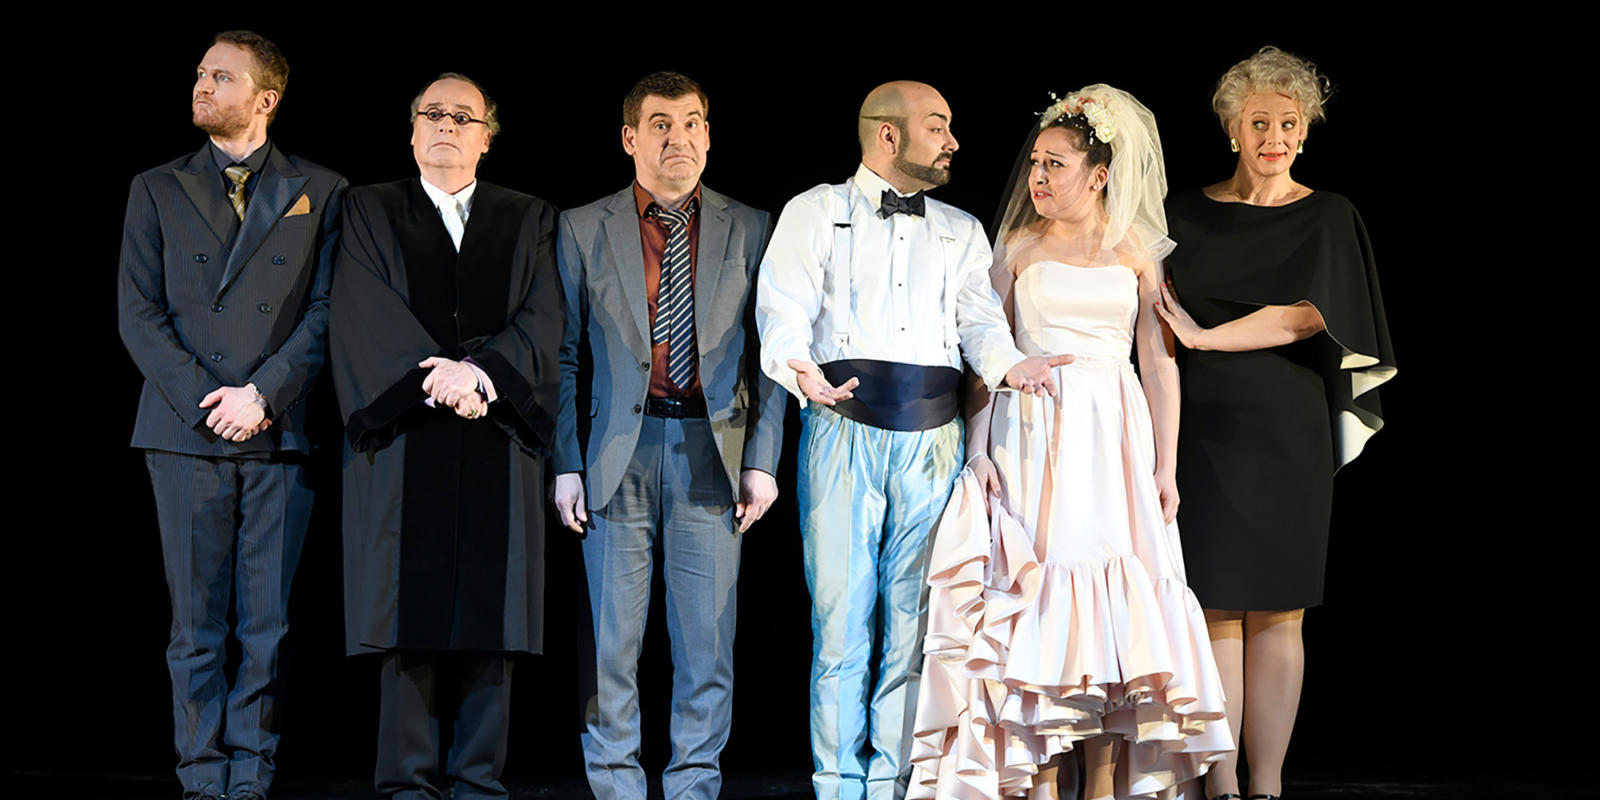 ENO1920: The Marriage of Figaro at Oper Wuppertal (c) Bettina Stoess